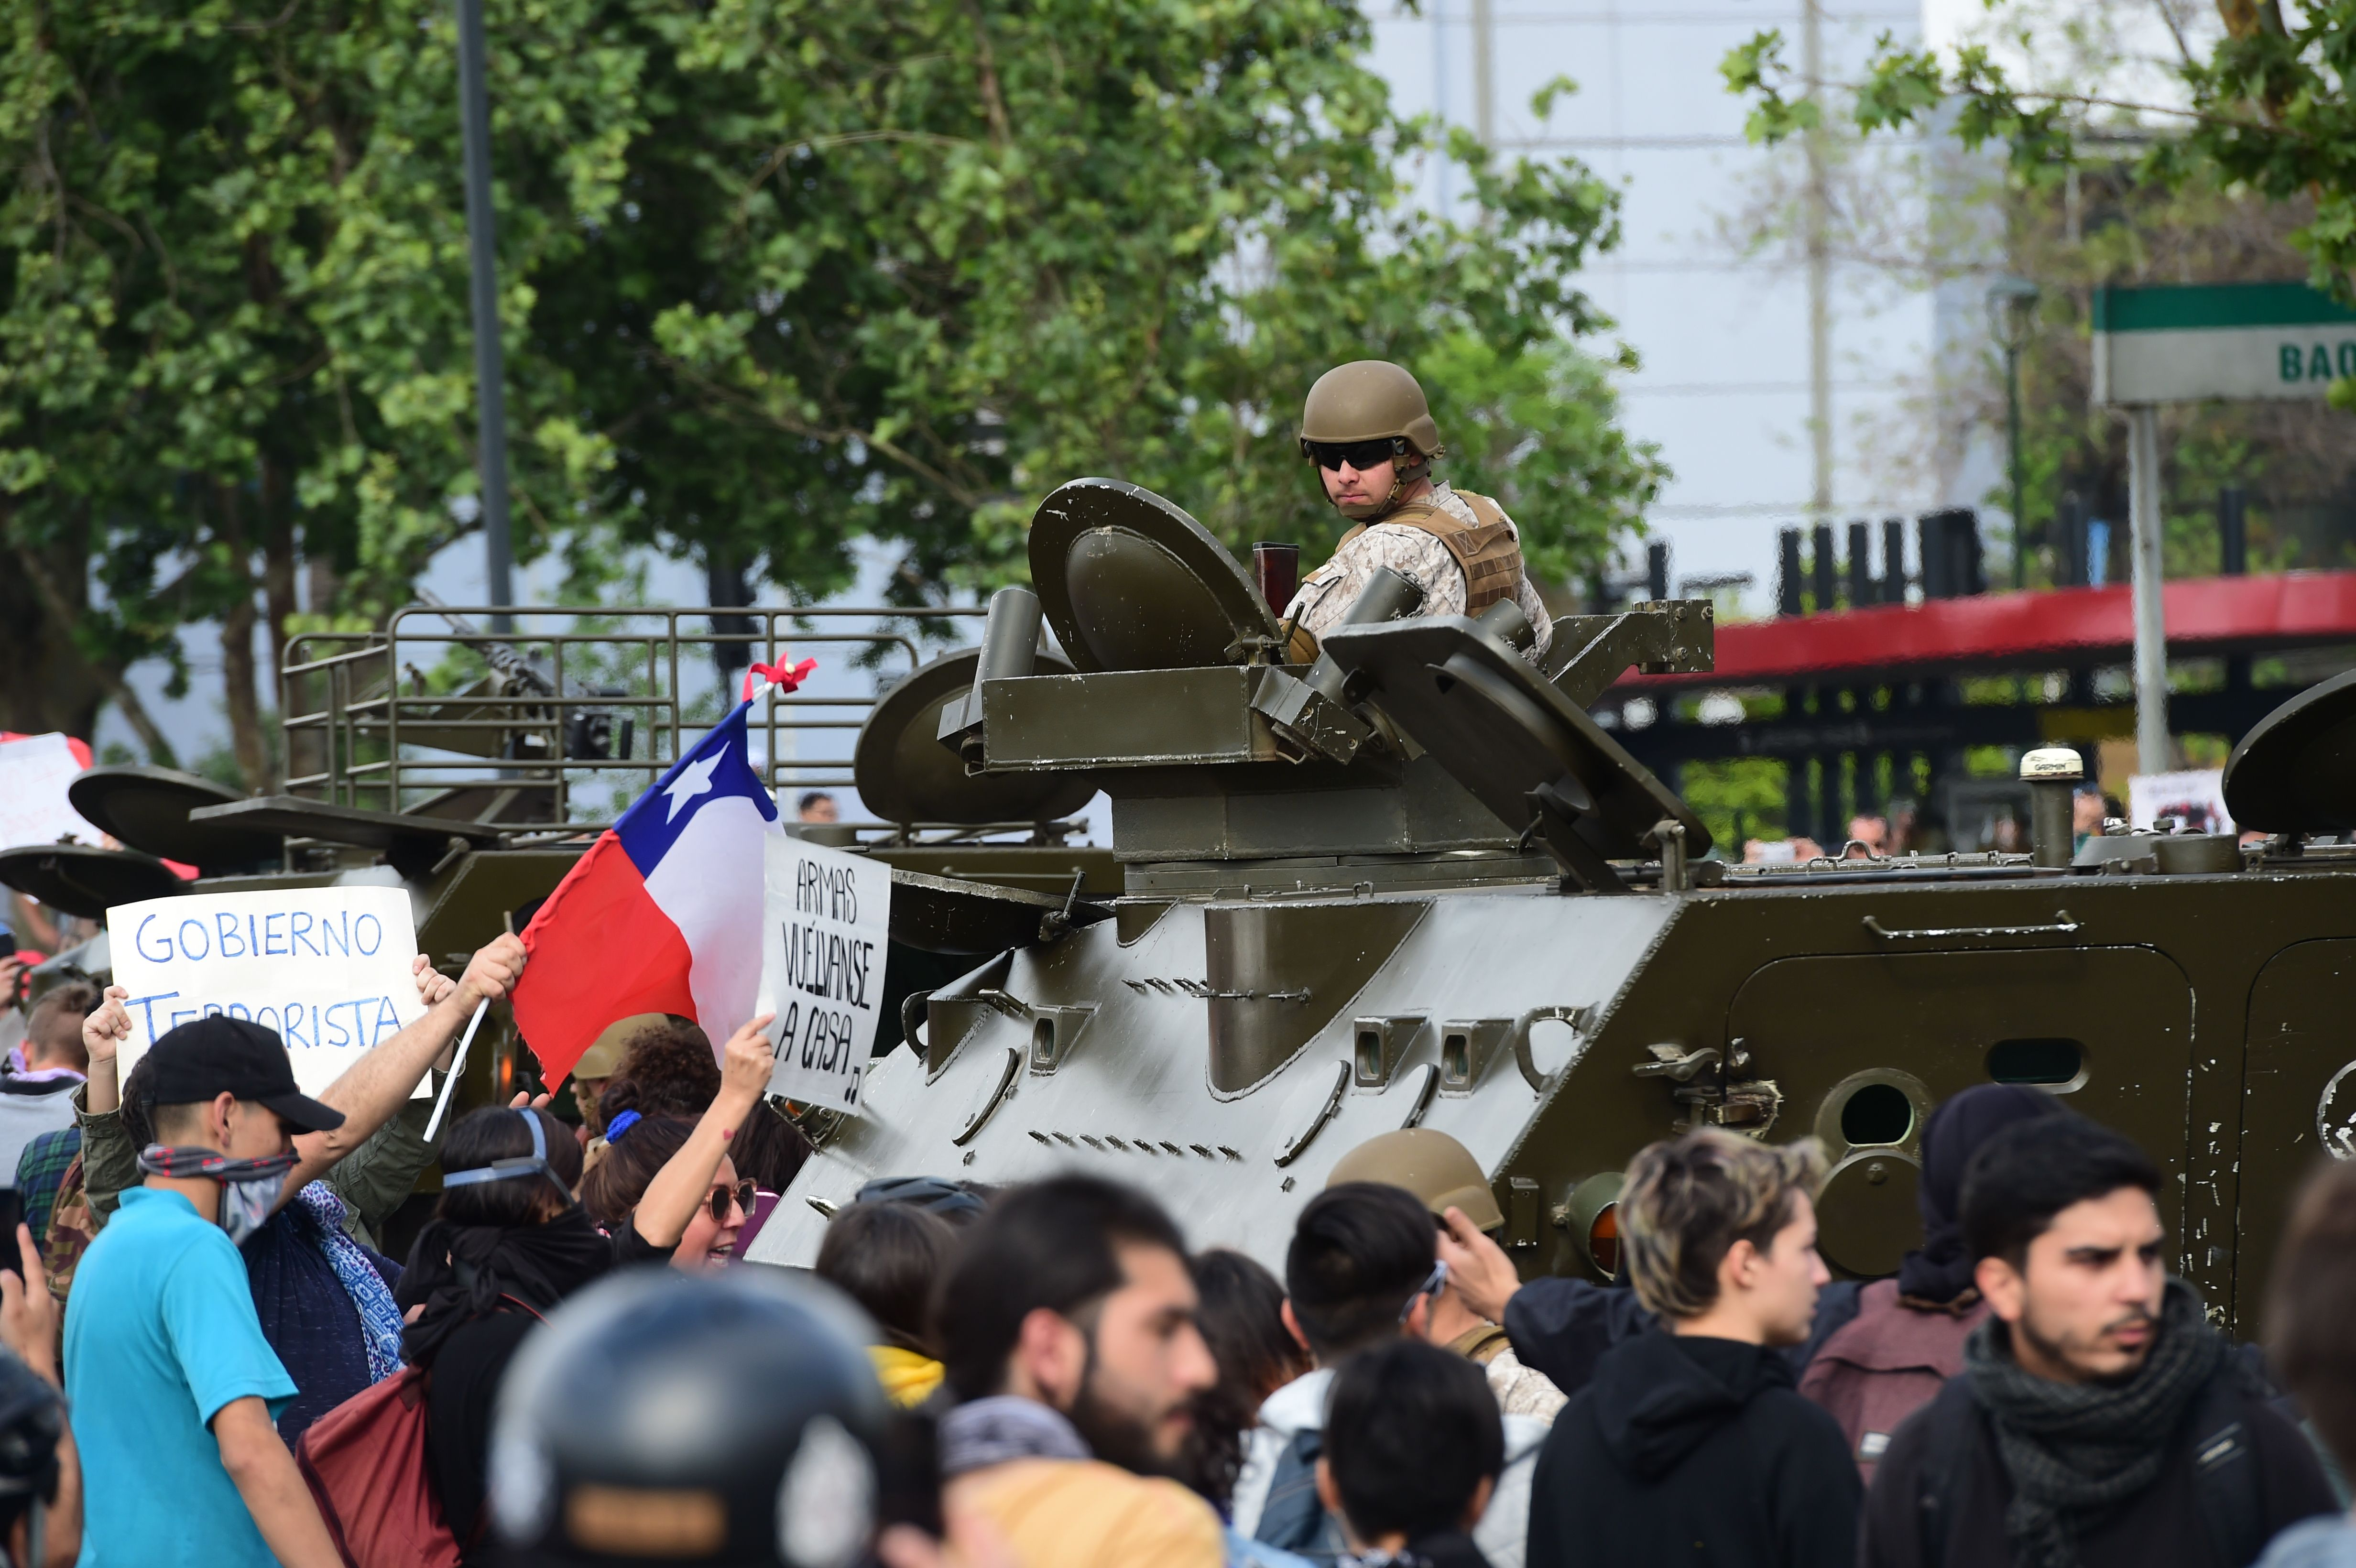 A soldier in a tank is surrounded by demonstrators in Santiago, on October 19, 2019. - Chile's president declared a state of emergency in Santiago Friday night and gave the military responsibility for security after a day of violent protests over an increase in the price of metro tickets. (Photo by Martin BERNETTI / AFP) (Photo by MARTIN BERNETTI/AFP via Getty Images)